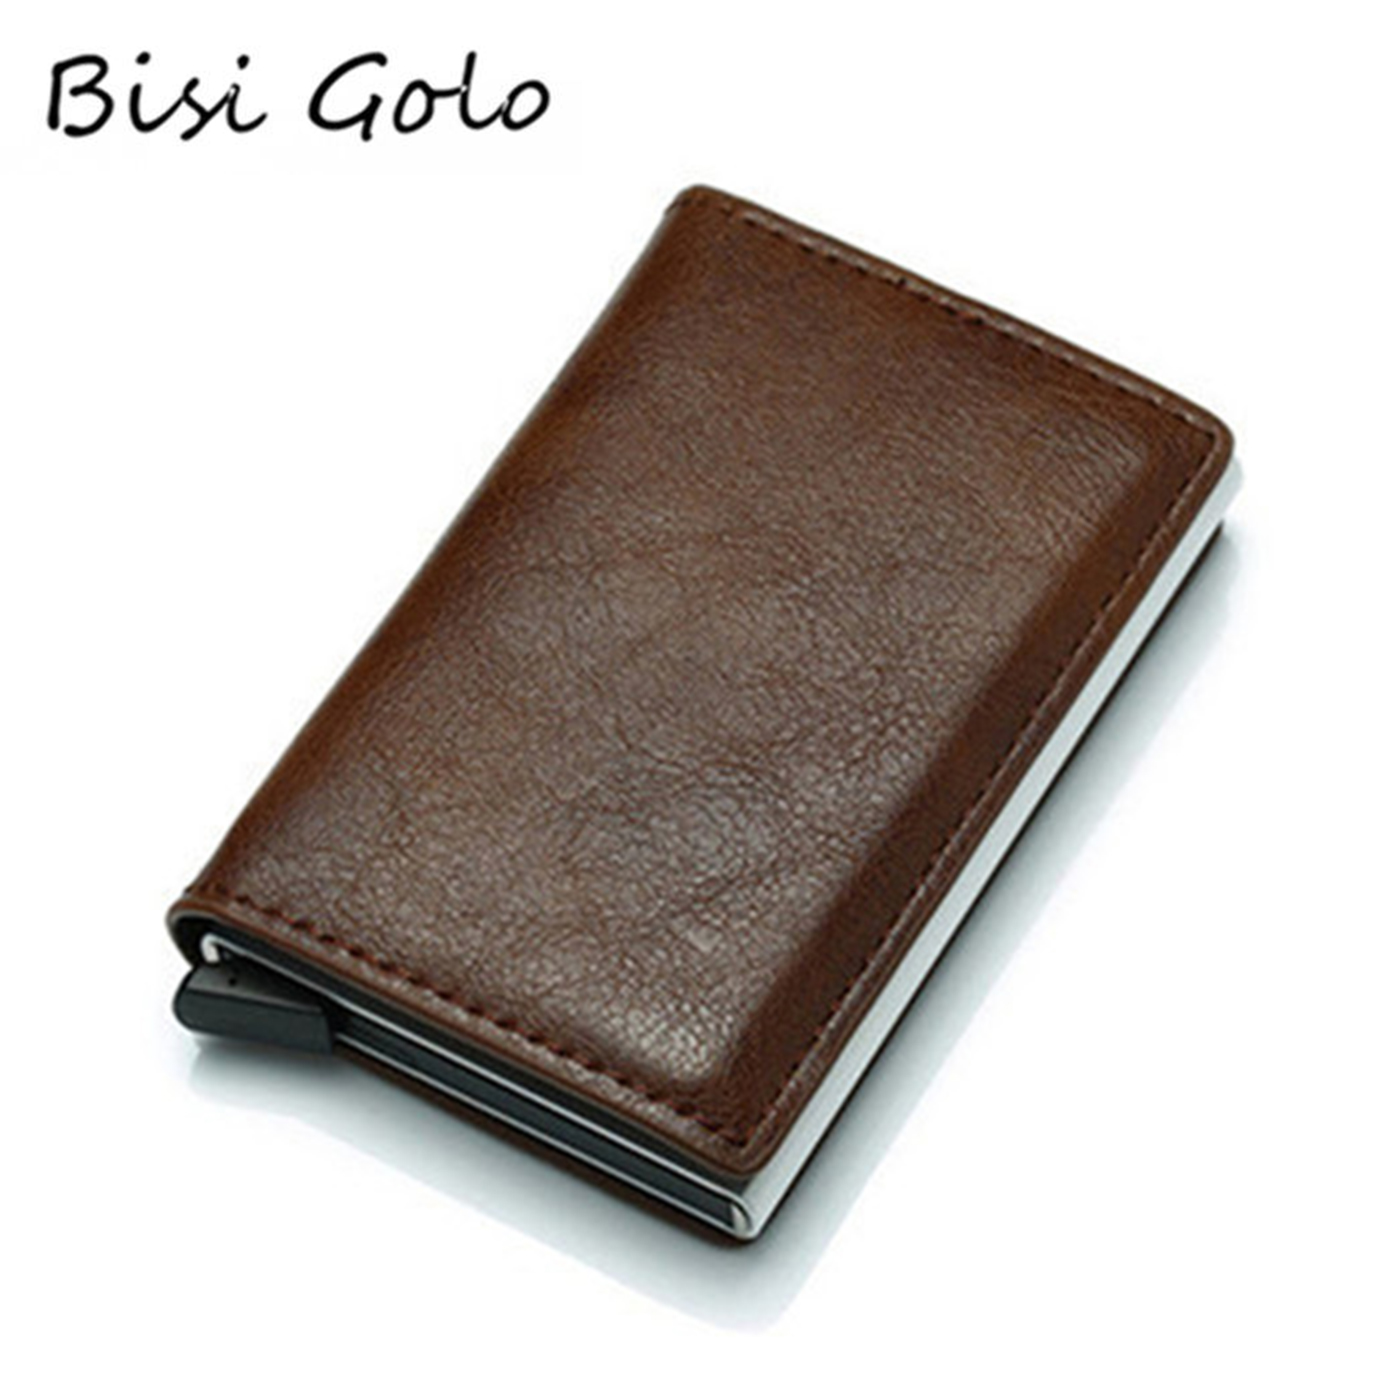 BISI GORO Antitheft Wallet Card Holder Hasp RFID Wallet Aluminum Unisex Metal High Quality Crazy Horse PU Leather Card WalletBISI GORO Antitheft Wallet Card Holder Hasp RFID Wallet Aluminum Unisex Metal High Quality Crazy Horse PU Leather Card Wallet